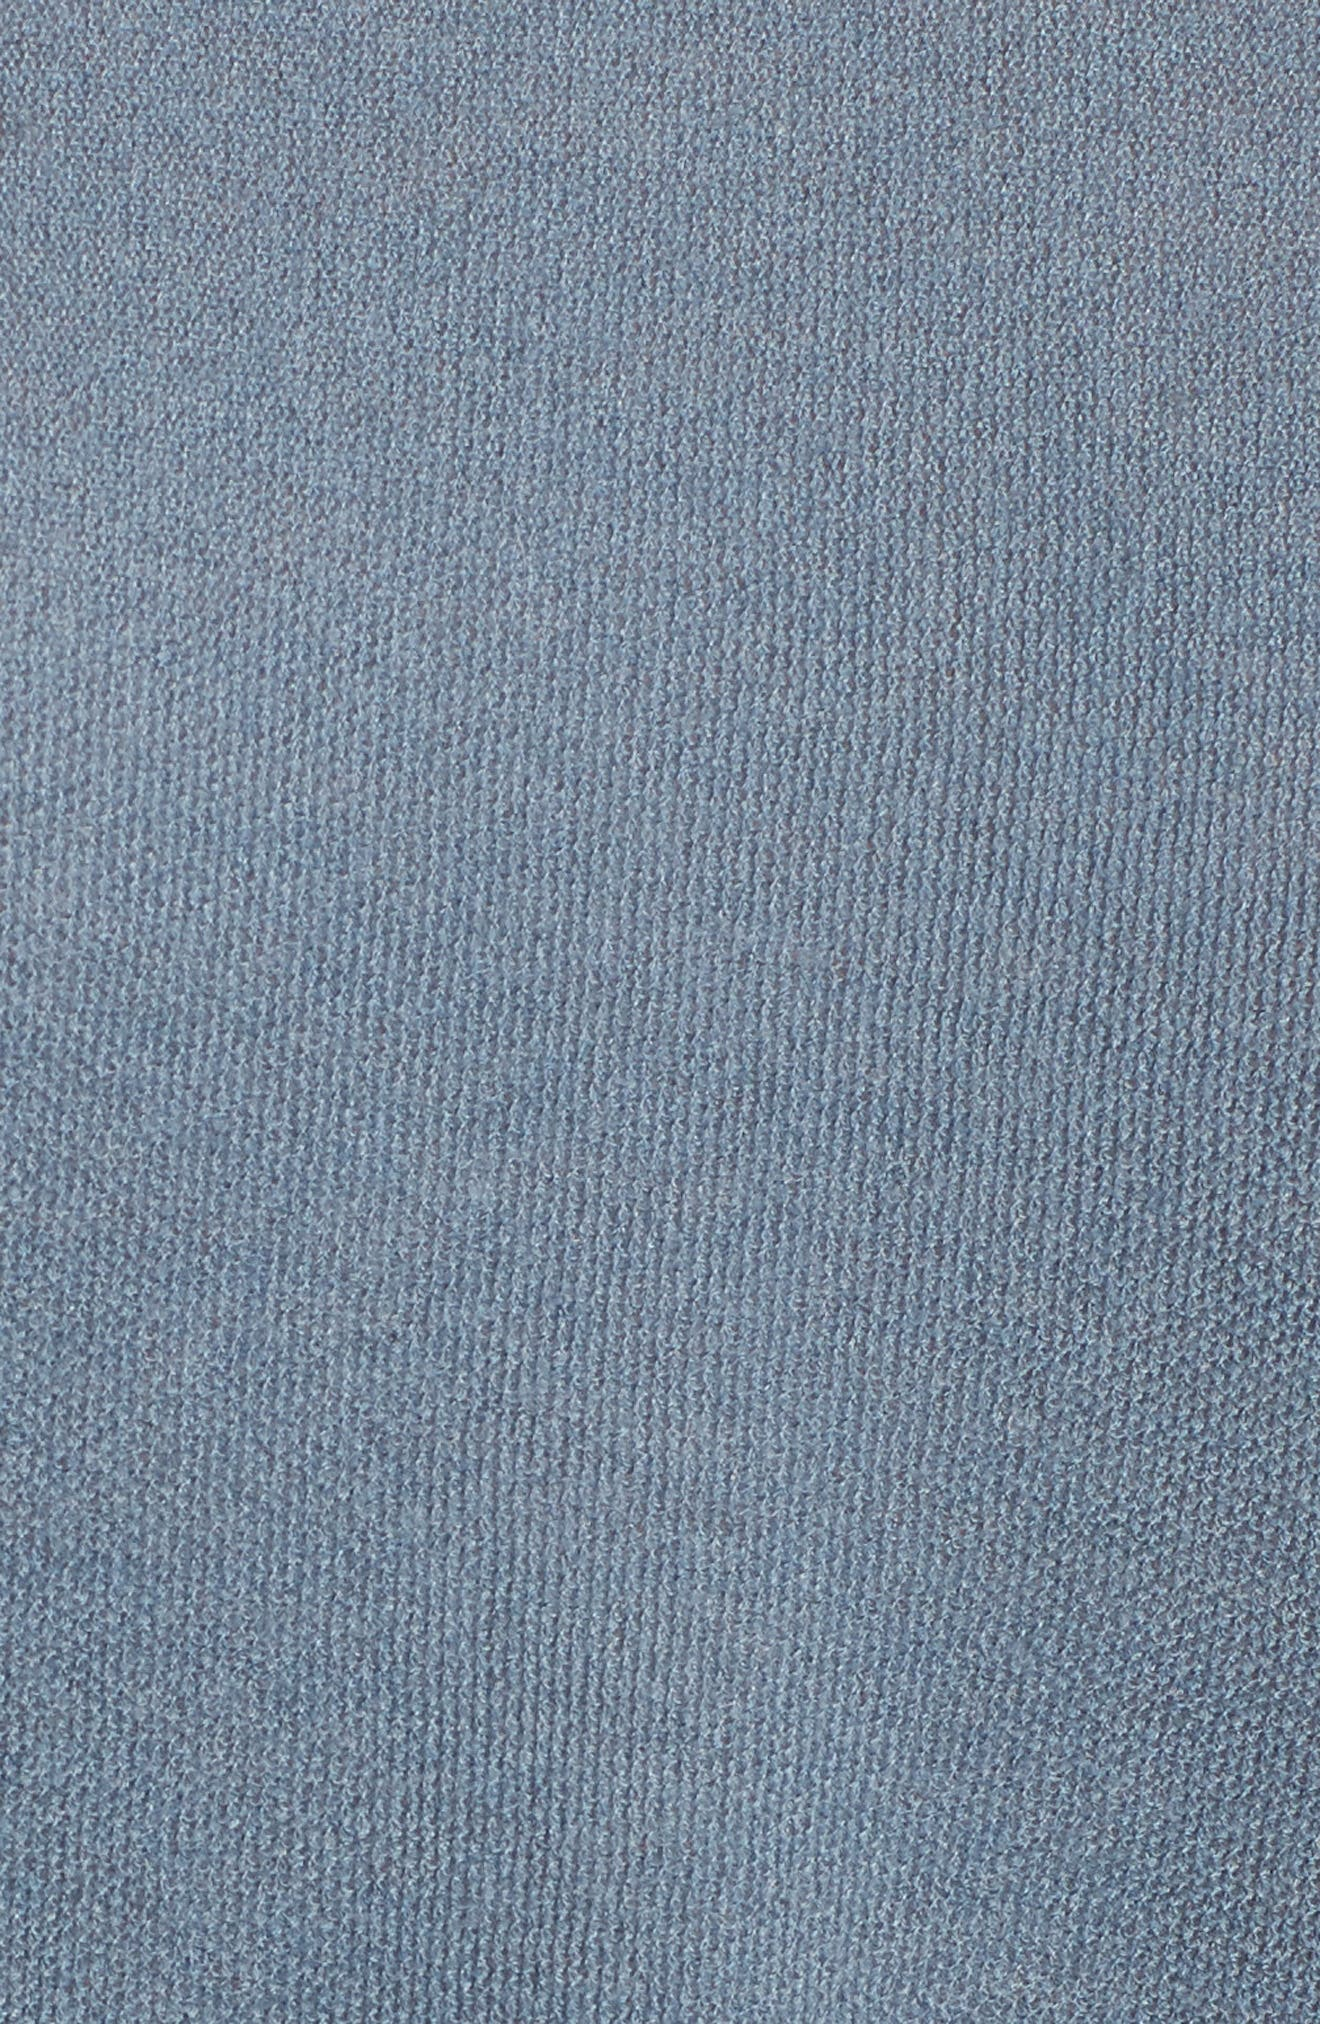 Cashmere Sweater,                             Alternate thumbnail 6, color,                             Heather Cruise